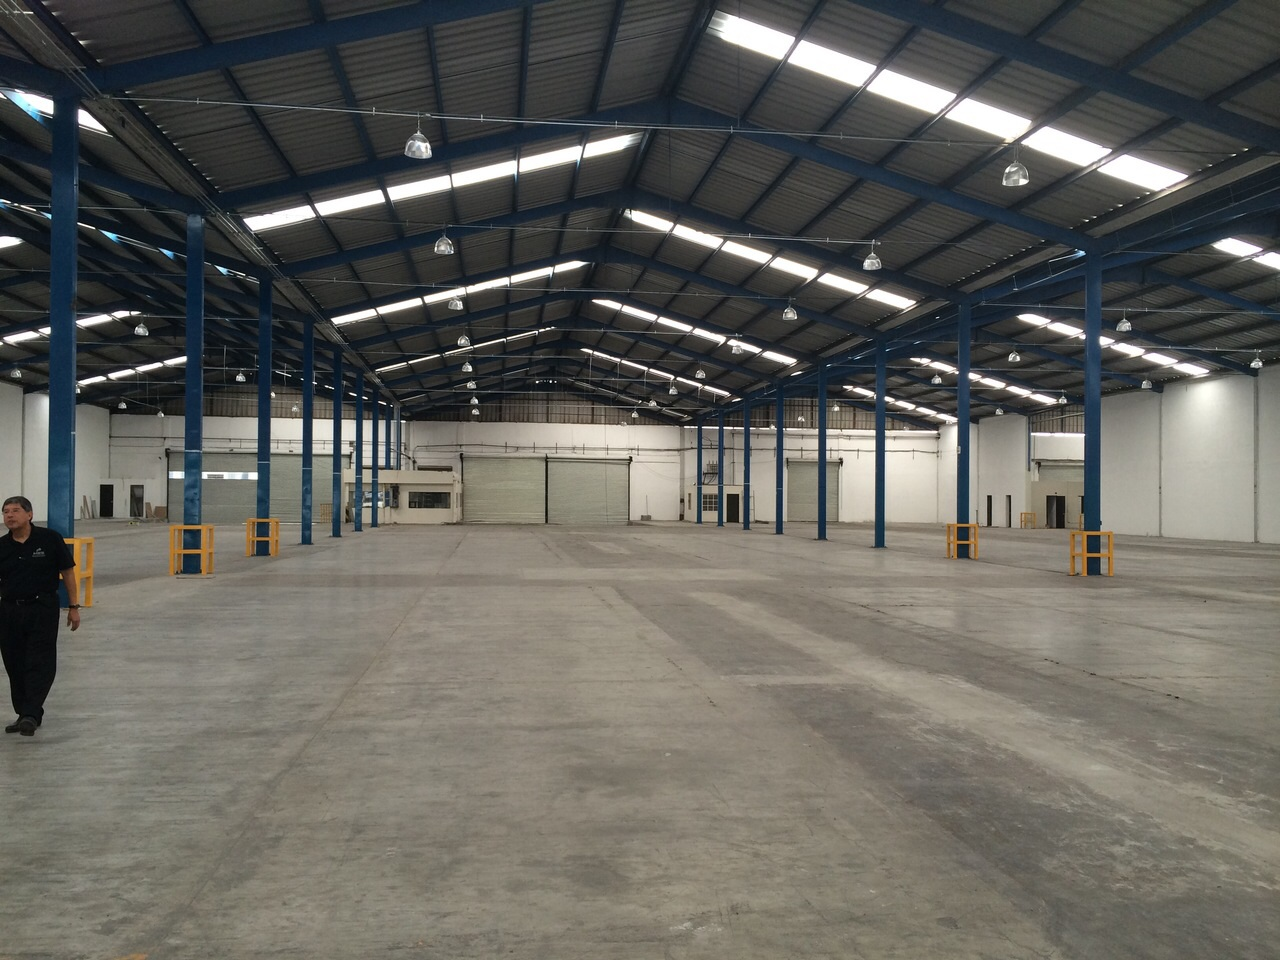 MES Inc Mexico Warehouse, global manufacturing sourcing, inventory management, low cost sourcing, supply chain management, overseas manfacturing